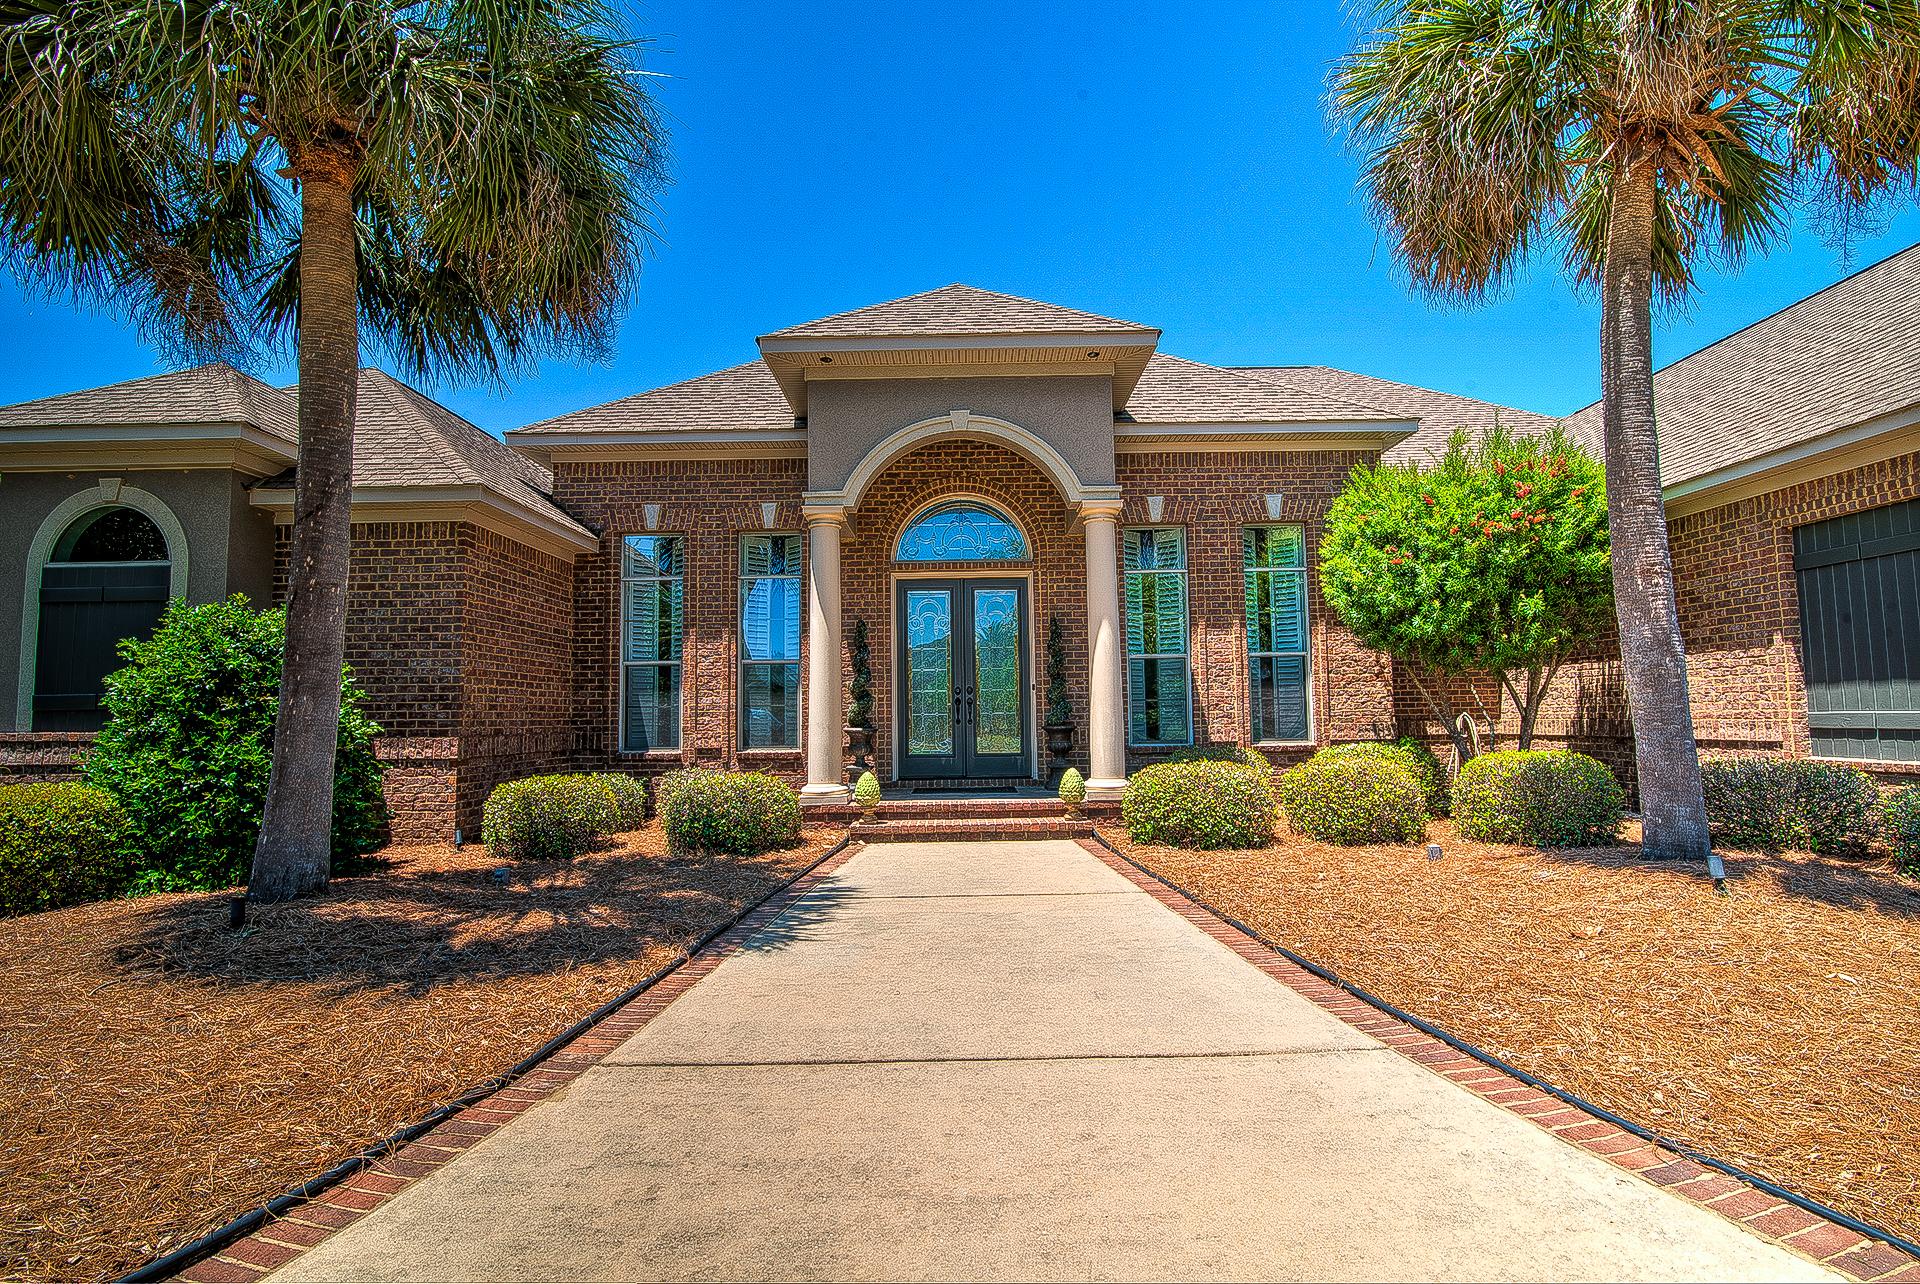 Angela martin archives matterport 3d virtual tours in for Craft farms gulf shores al